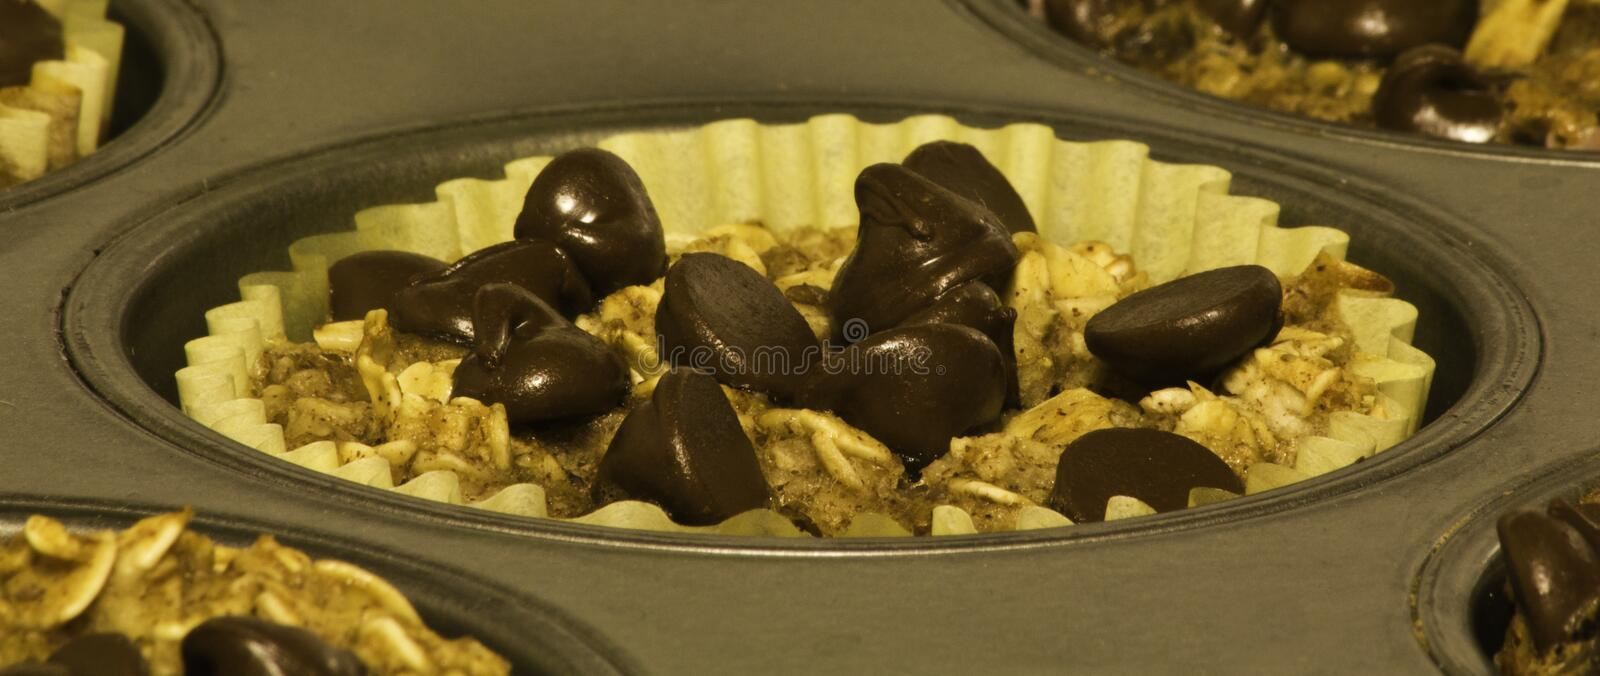 Chocolate Chip Baked Oat Cups stock photo